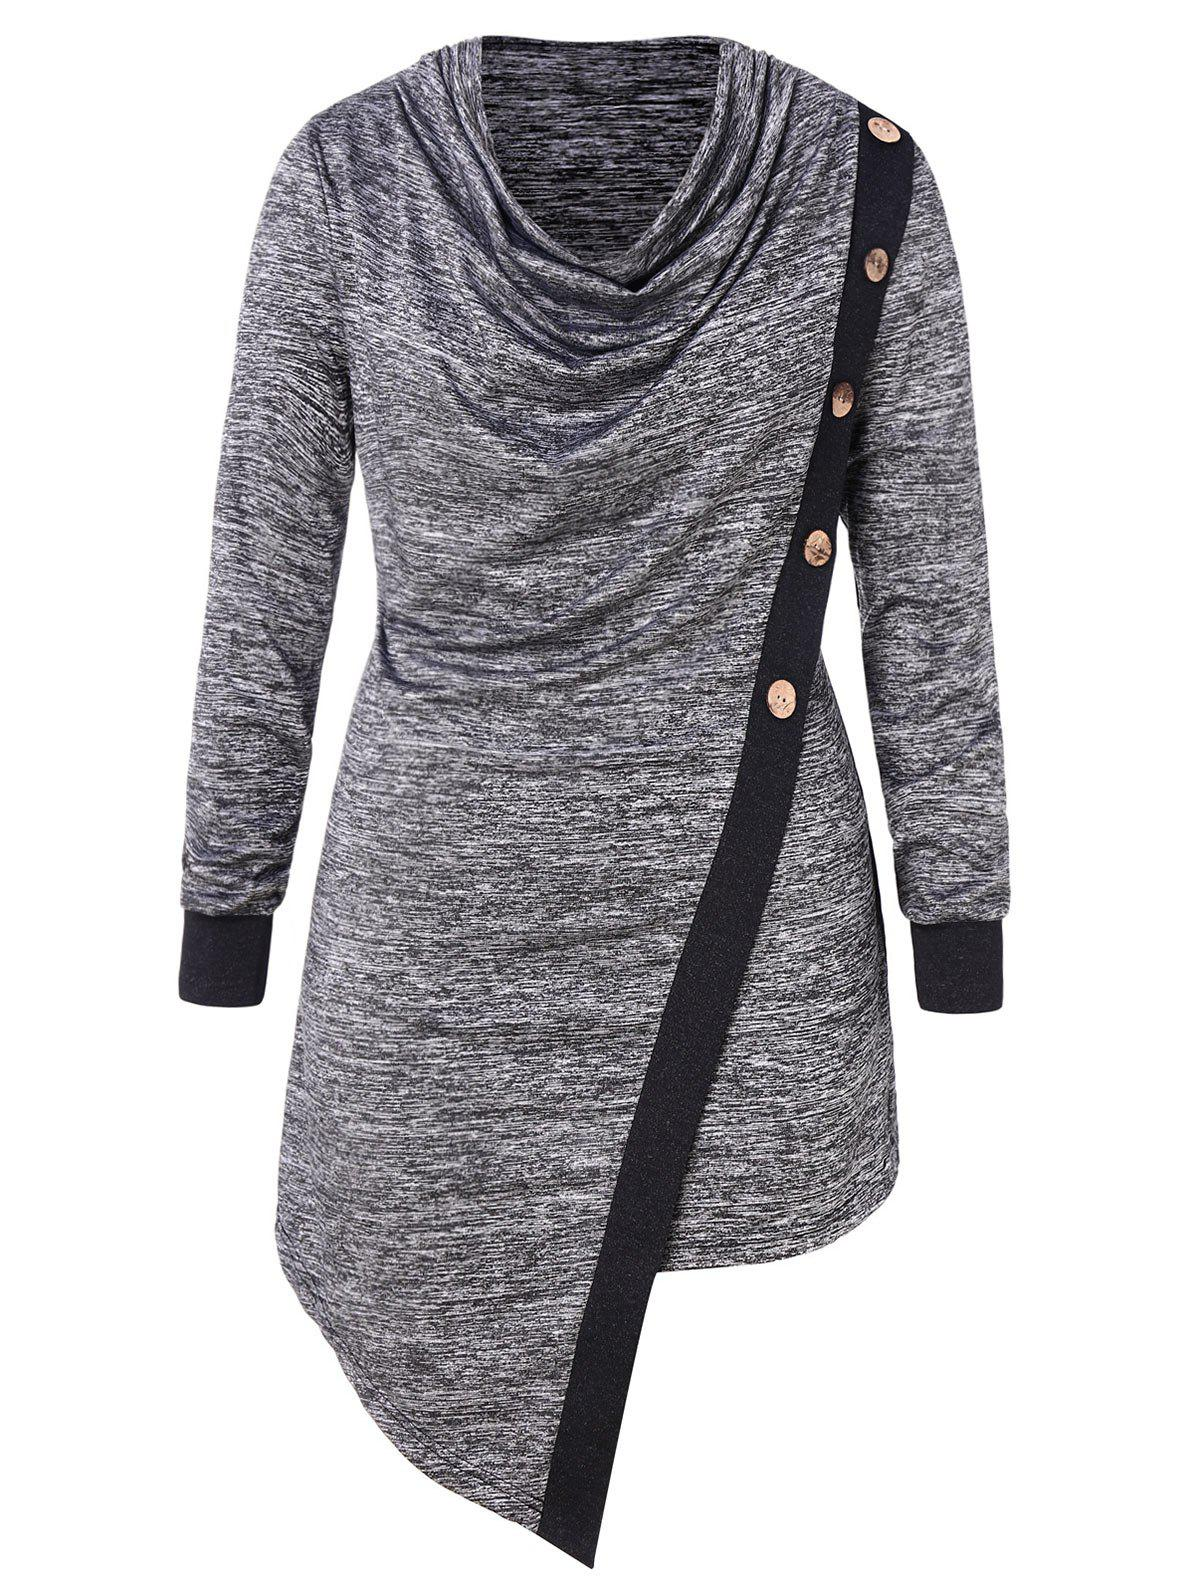 Plus Size Buttoned Side High Low T-shirt - CARBON GRAY 4X